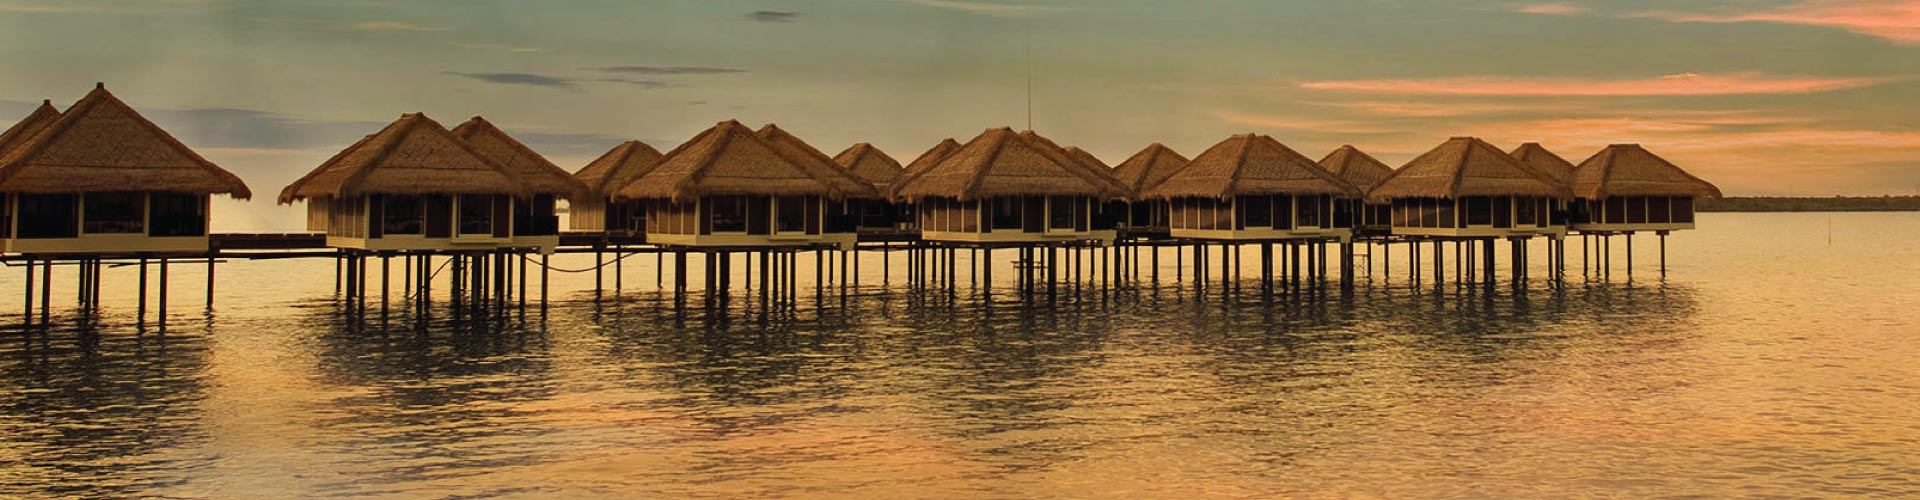 Staycation On The Water @ Avani Sepang Goldcoast Resort